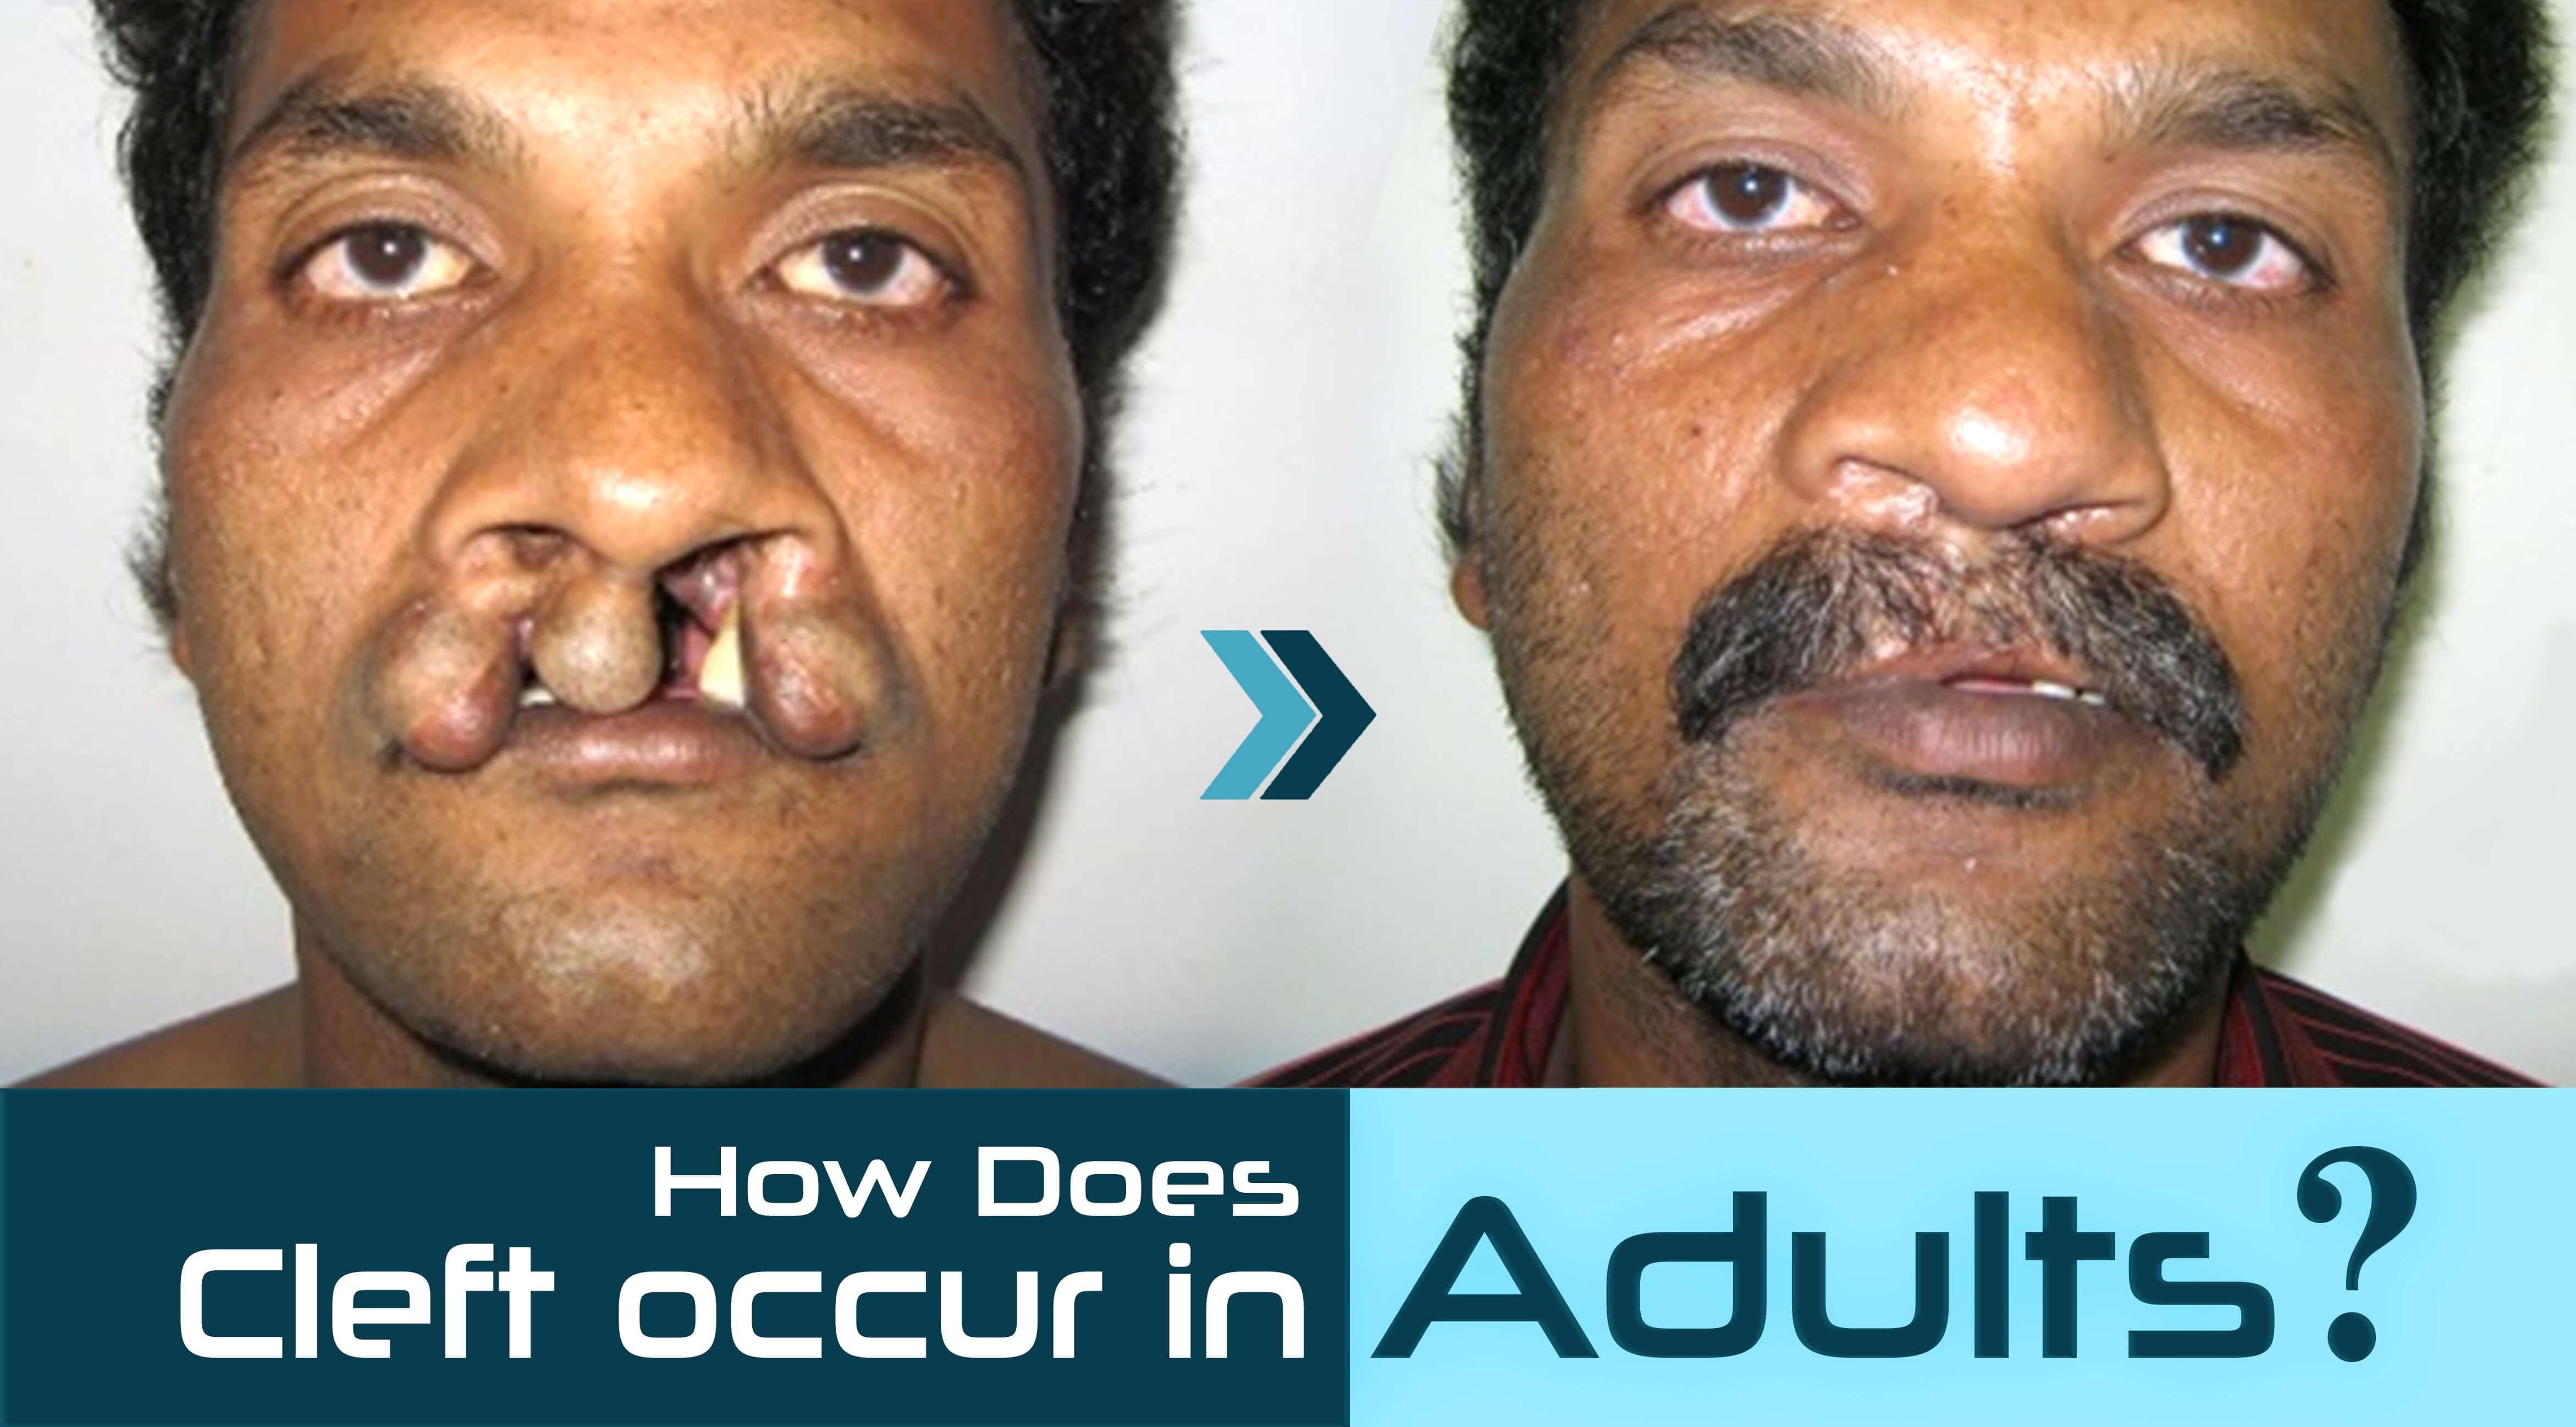 Cleft occur in adults